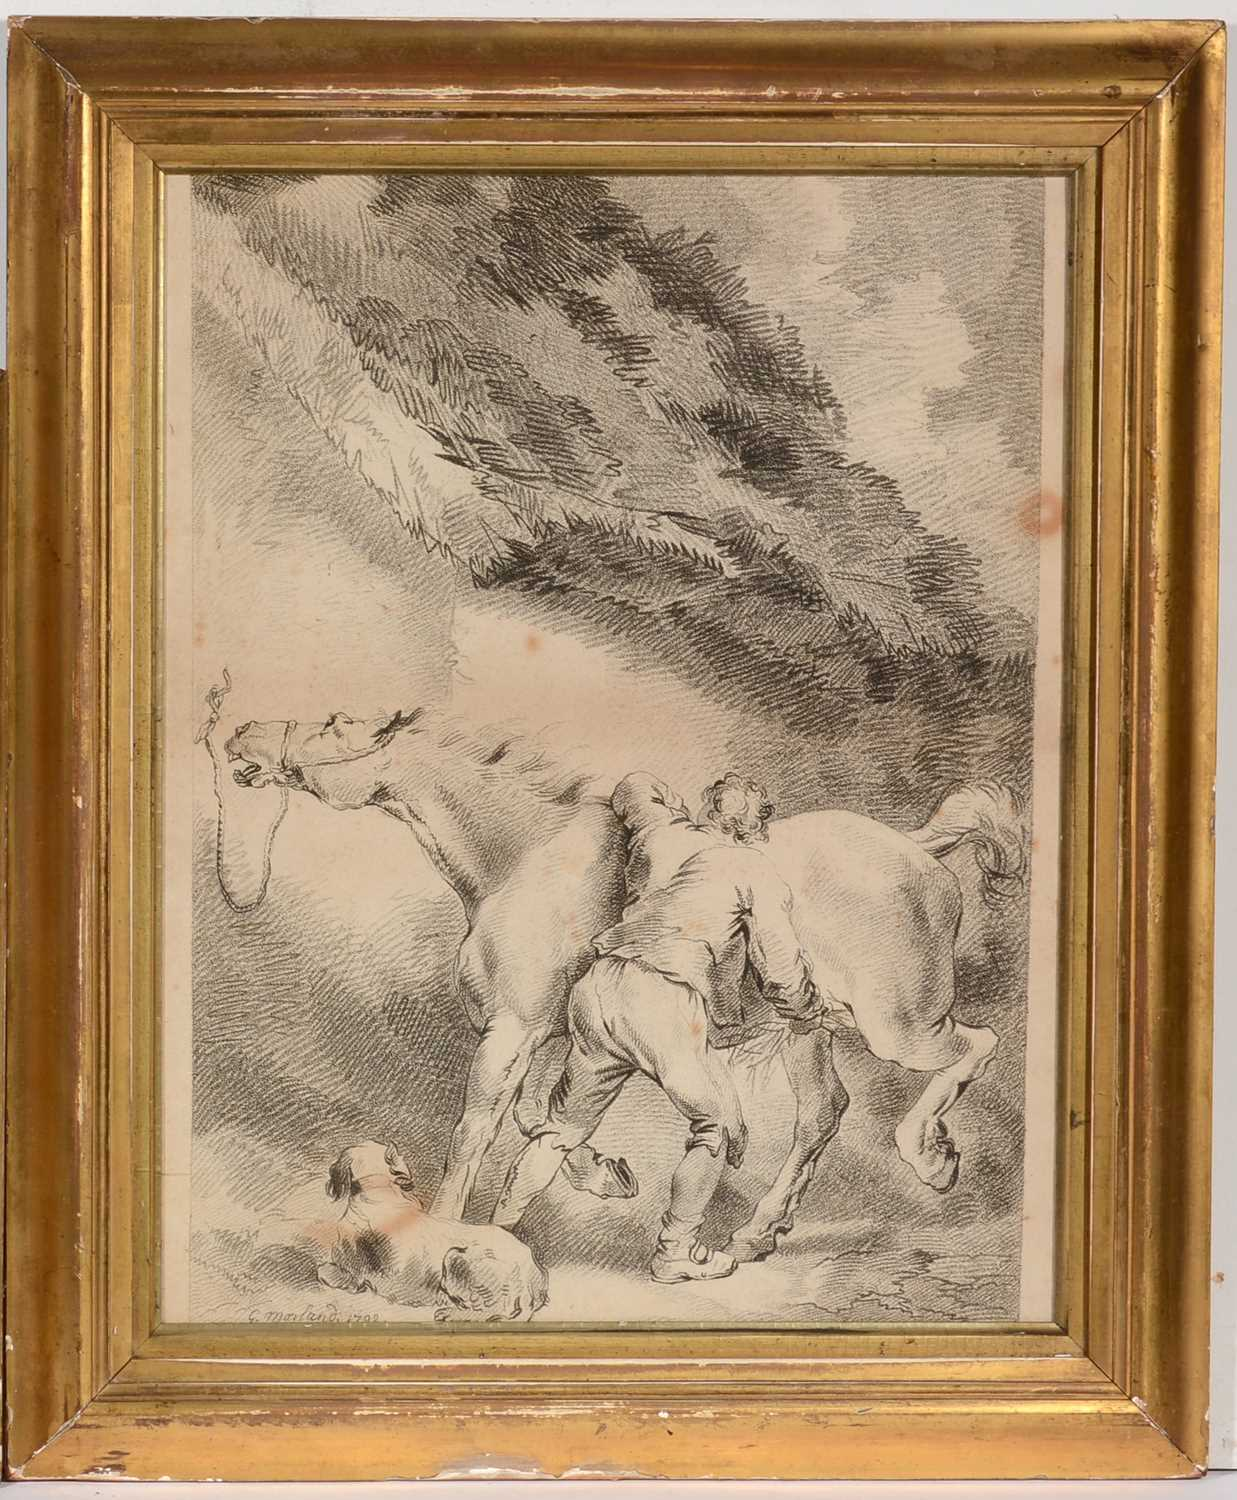 Lot 633 - After George Morland - lithograph.